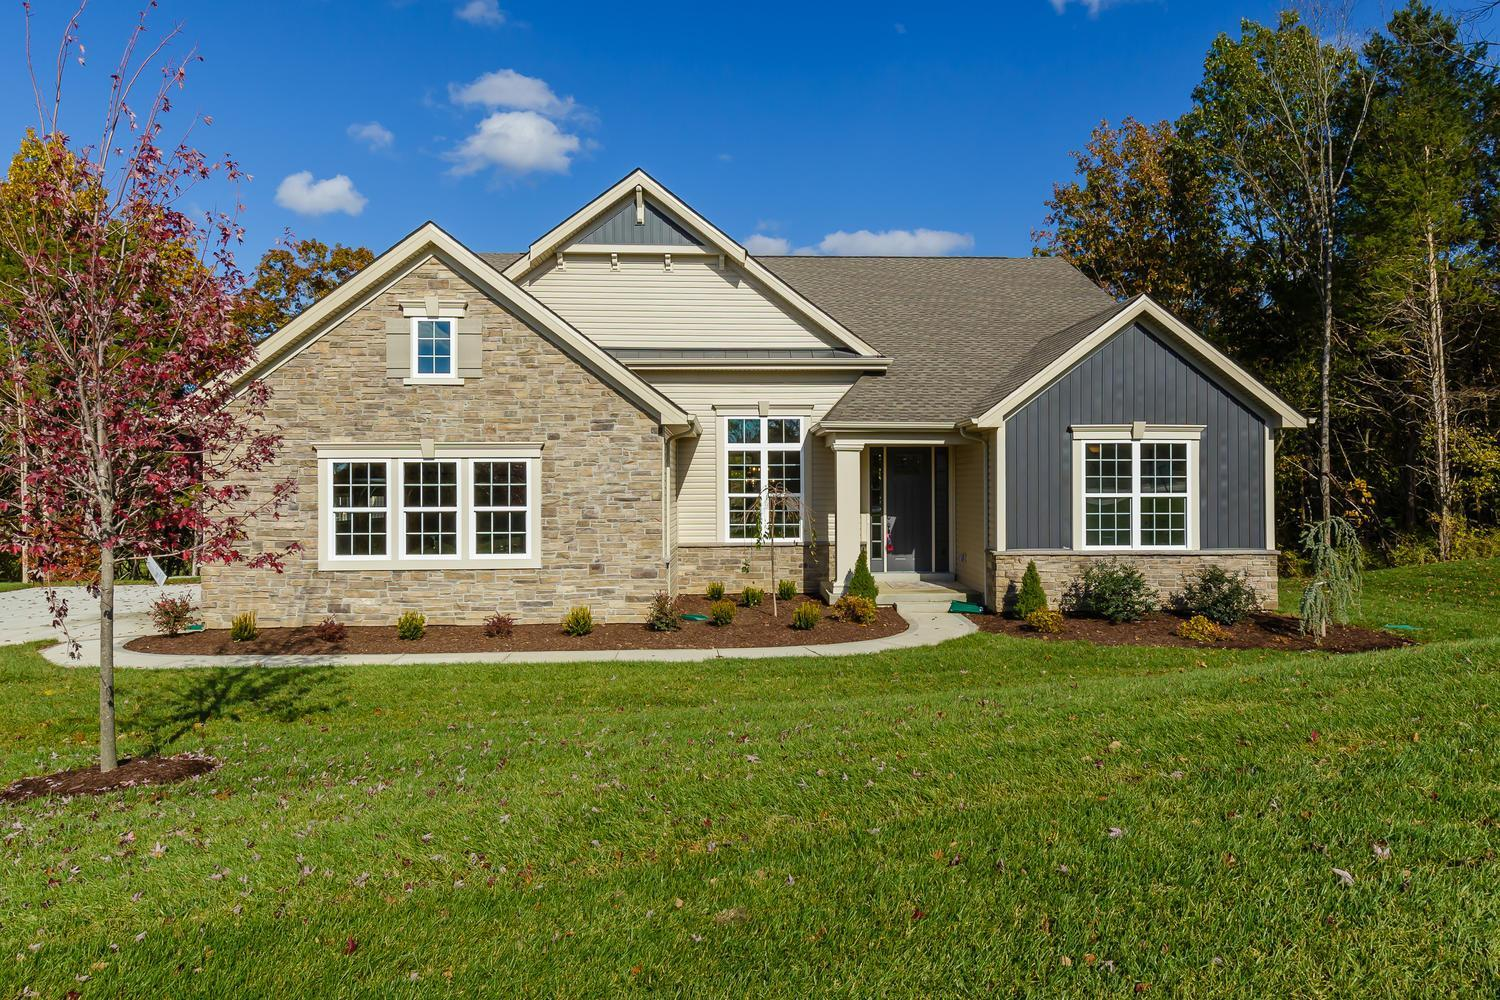 Single Family for Active at Eads 226 Pevely Farms Drive Eureka, Missouri 63025 United States